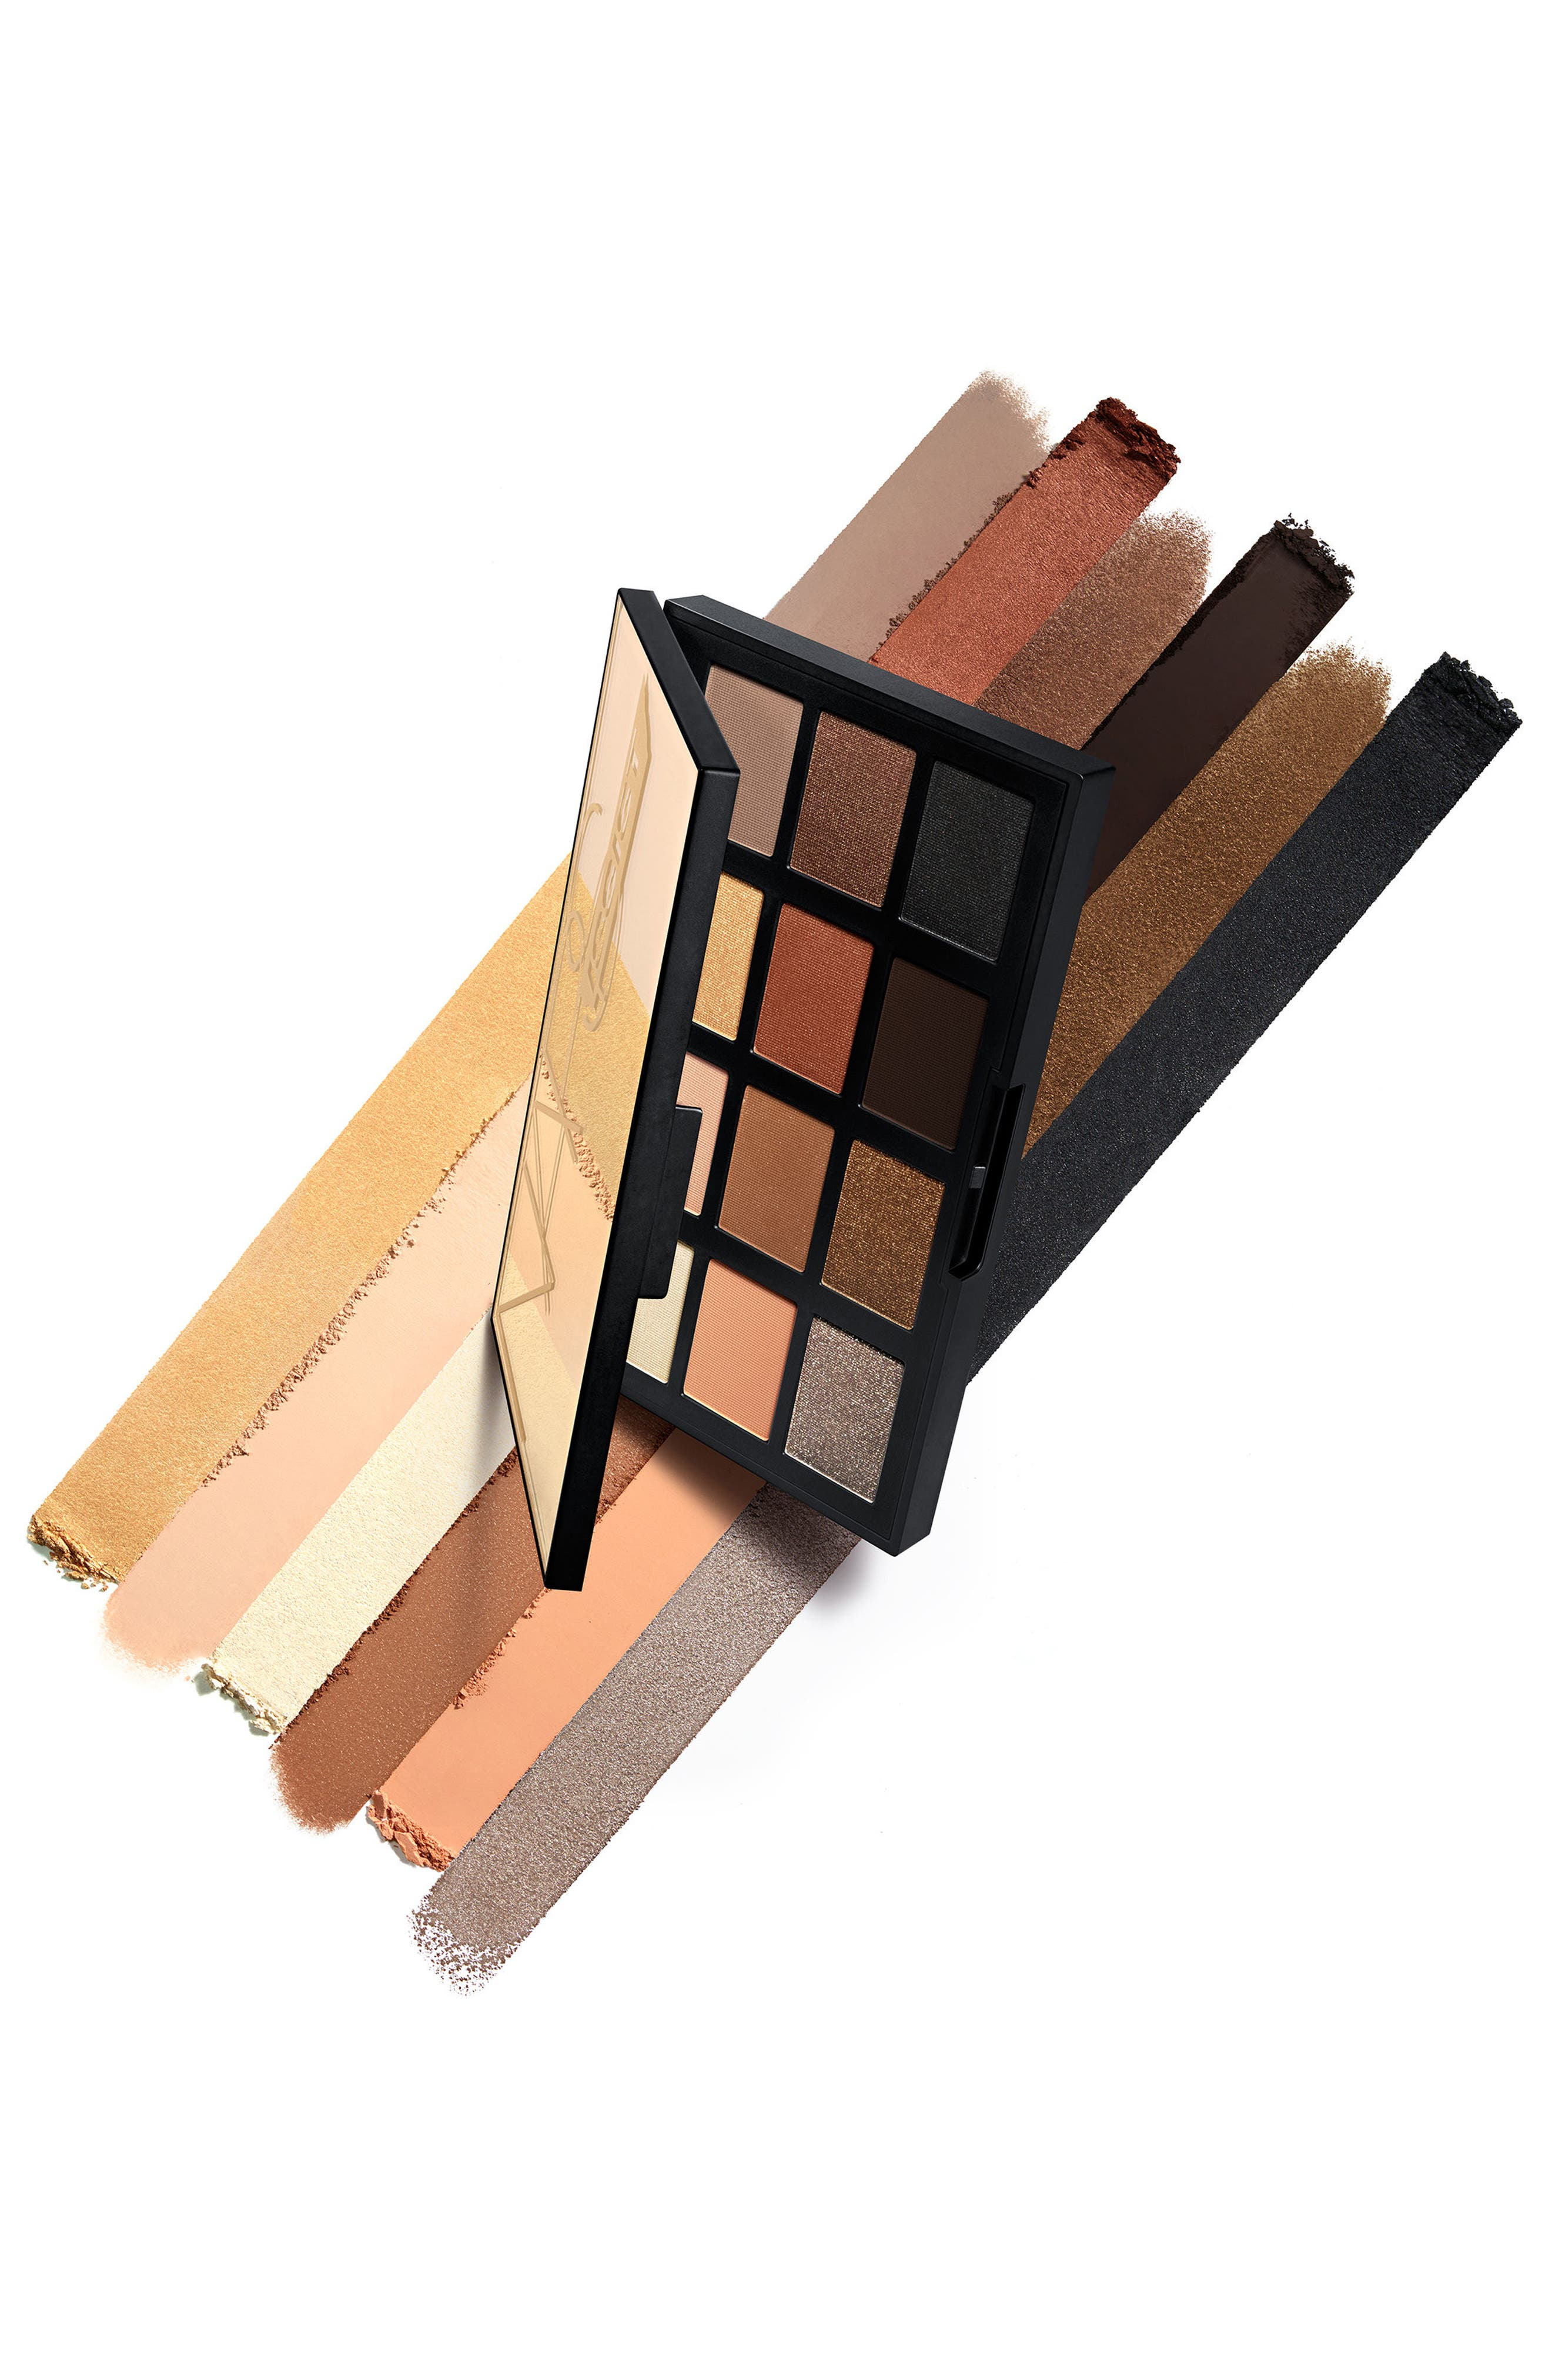 NARSissist Loaded Eyeshadow Palette,                             Alternate thumbnail 4, color,                             No Color